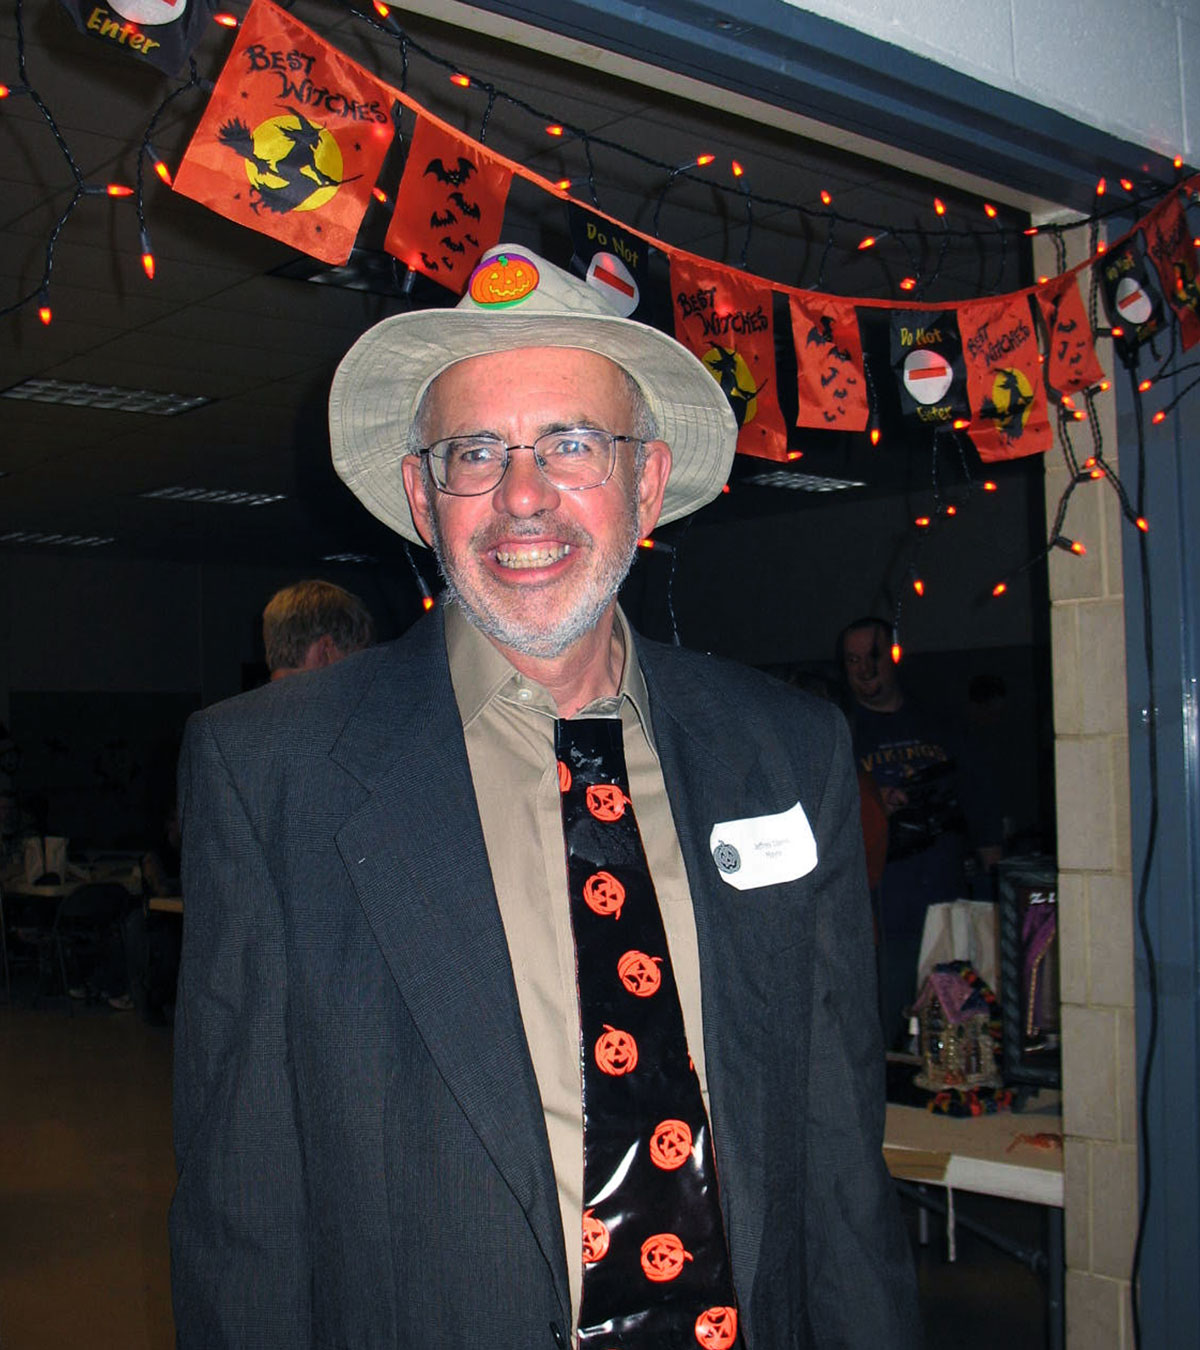 Jeff dressed up for a Halloween party at Lauderdale City Hall